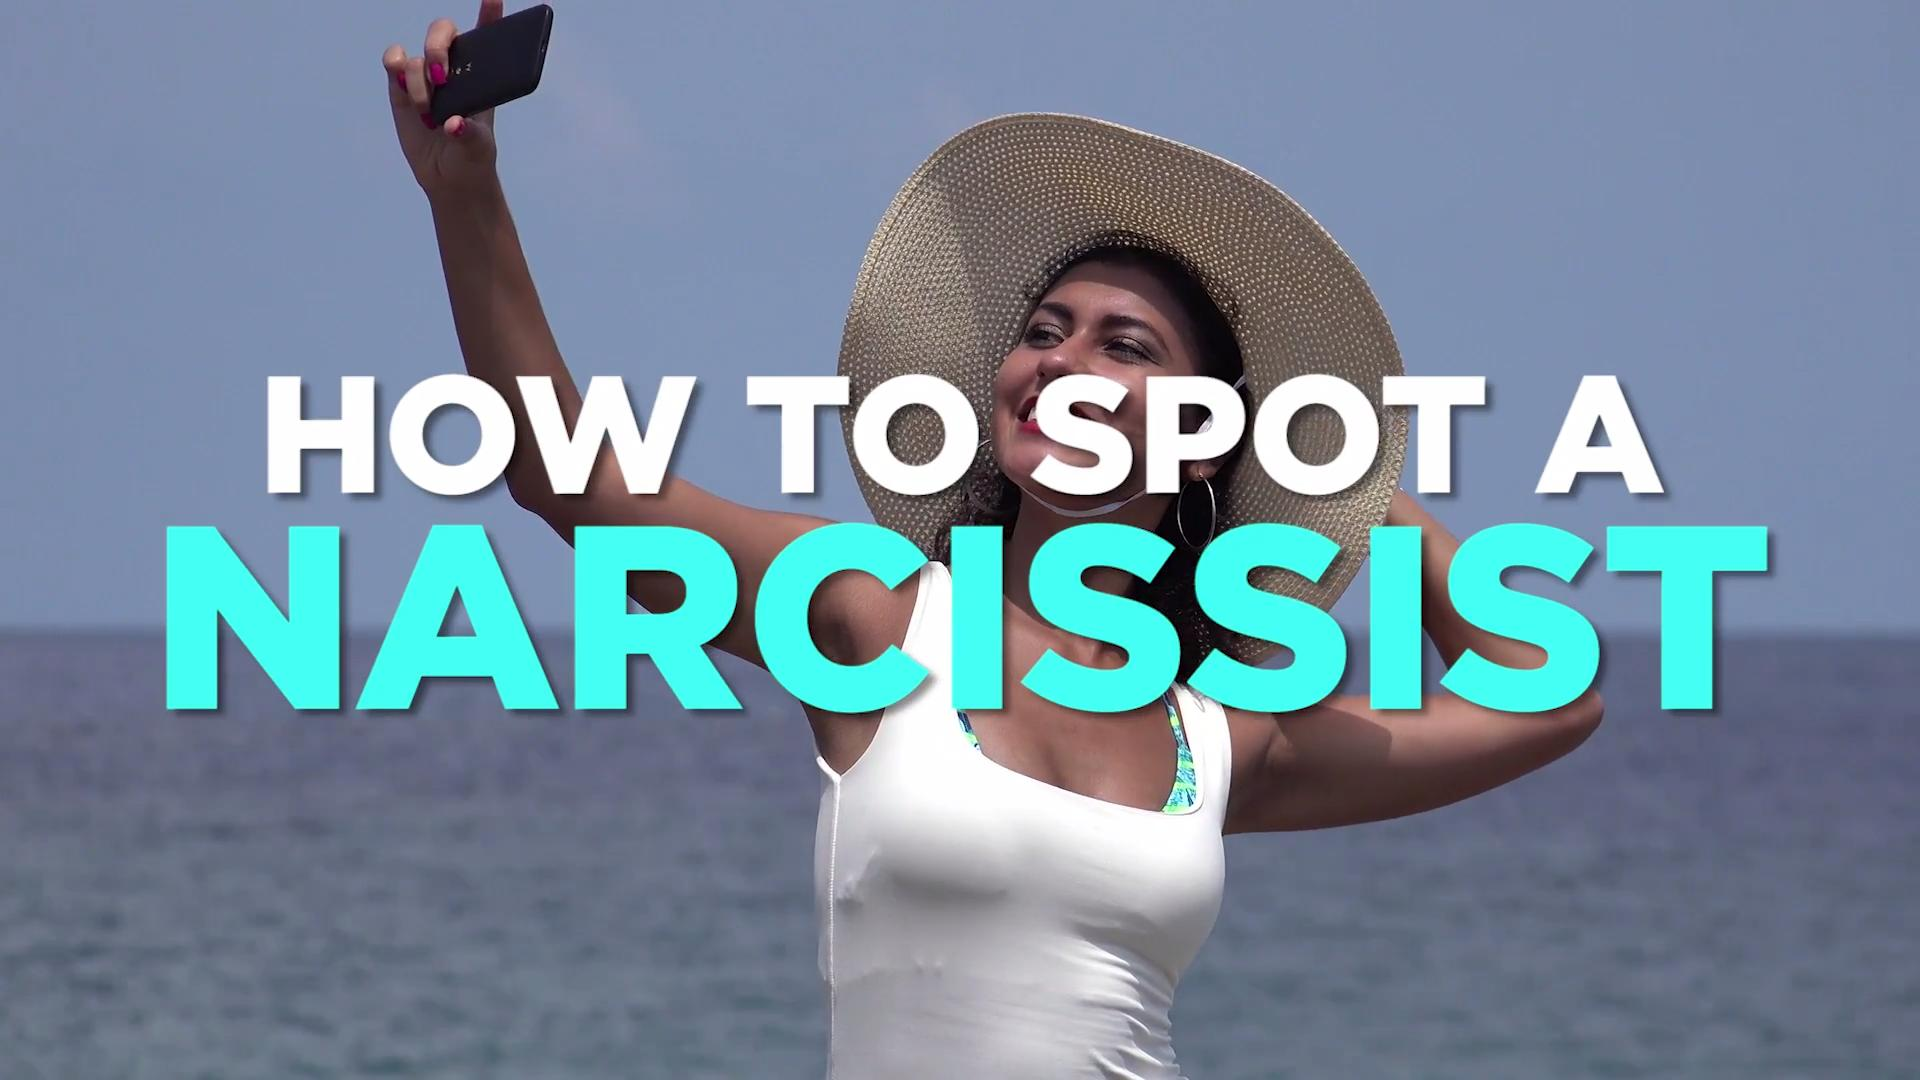 Narcissistic Abuse Is the Scary New Kind of Emotional Abuse You Need to Know About